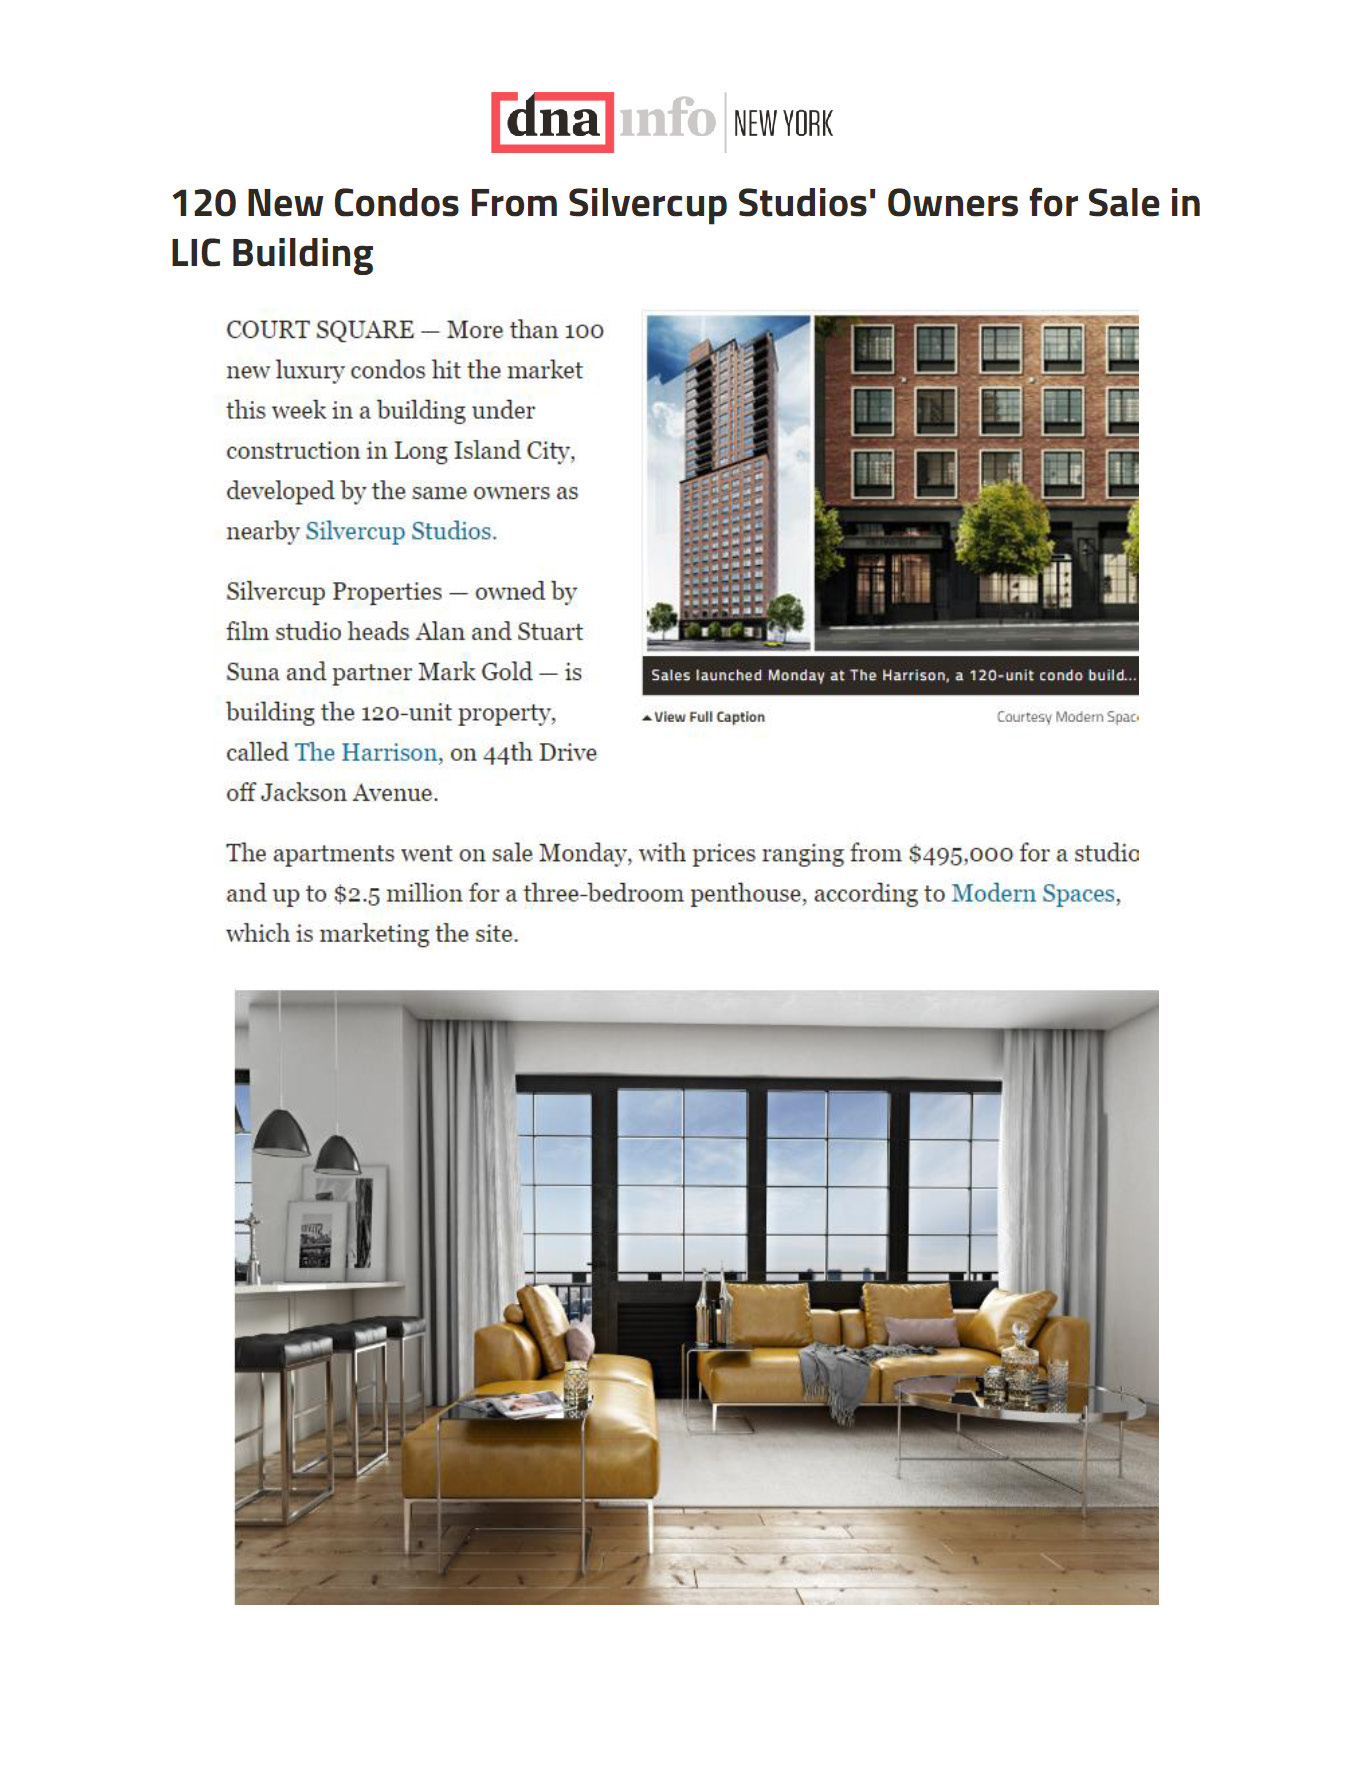 dnainfo-120-new-condos-from-silvercup-studios-owners-for-sale-in-lic-building-9-27-16-1_page_1